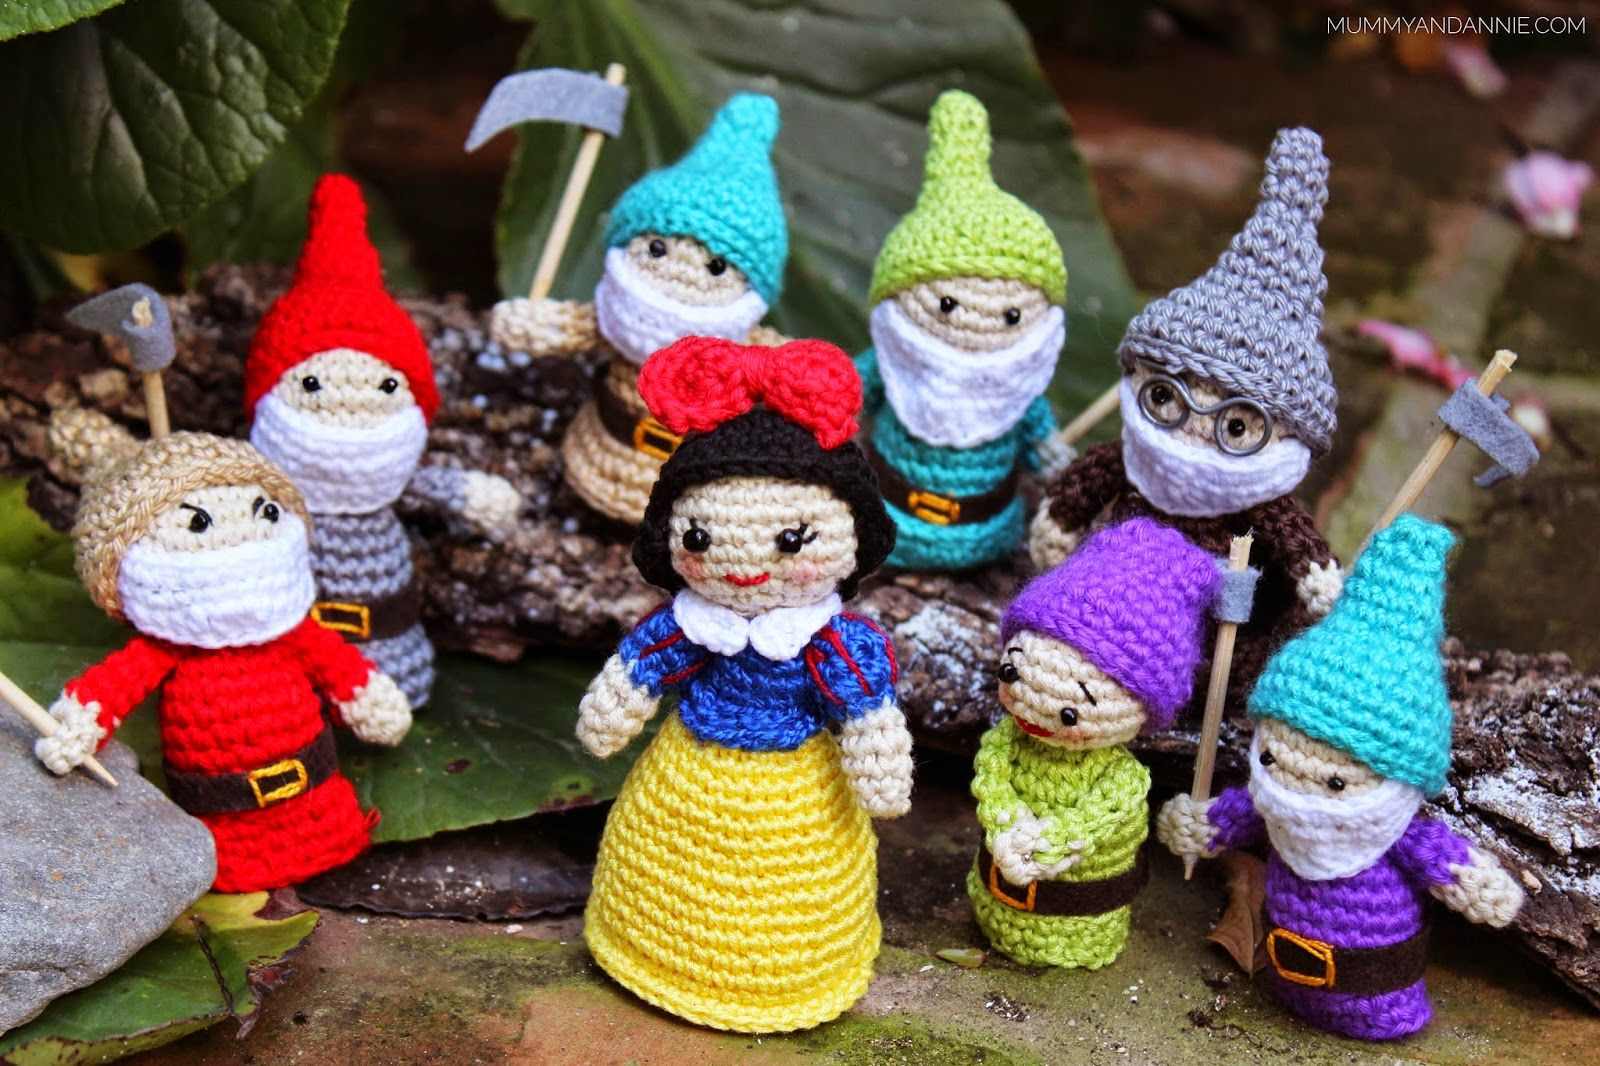 Amigurumi Frida Kahlo Patron : Mummy and annie: blancanieves and the 7 enanitos crochet